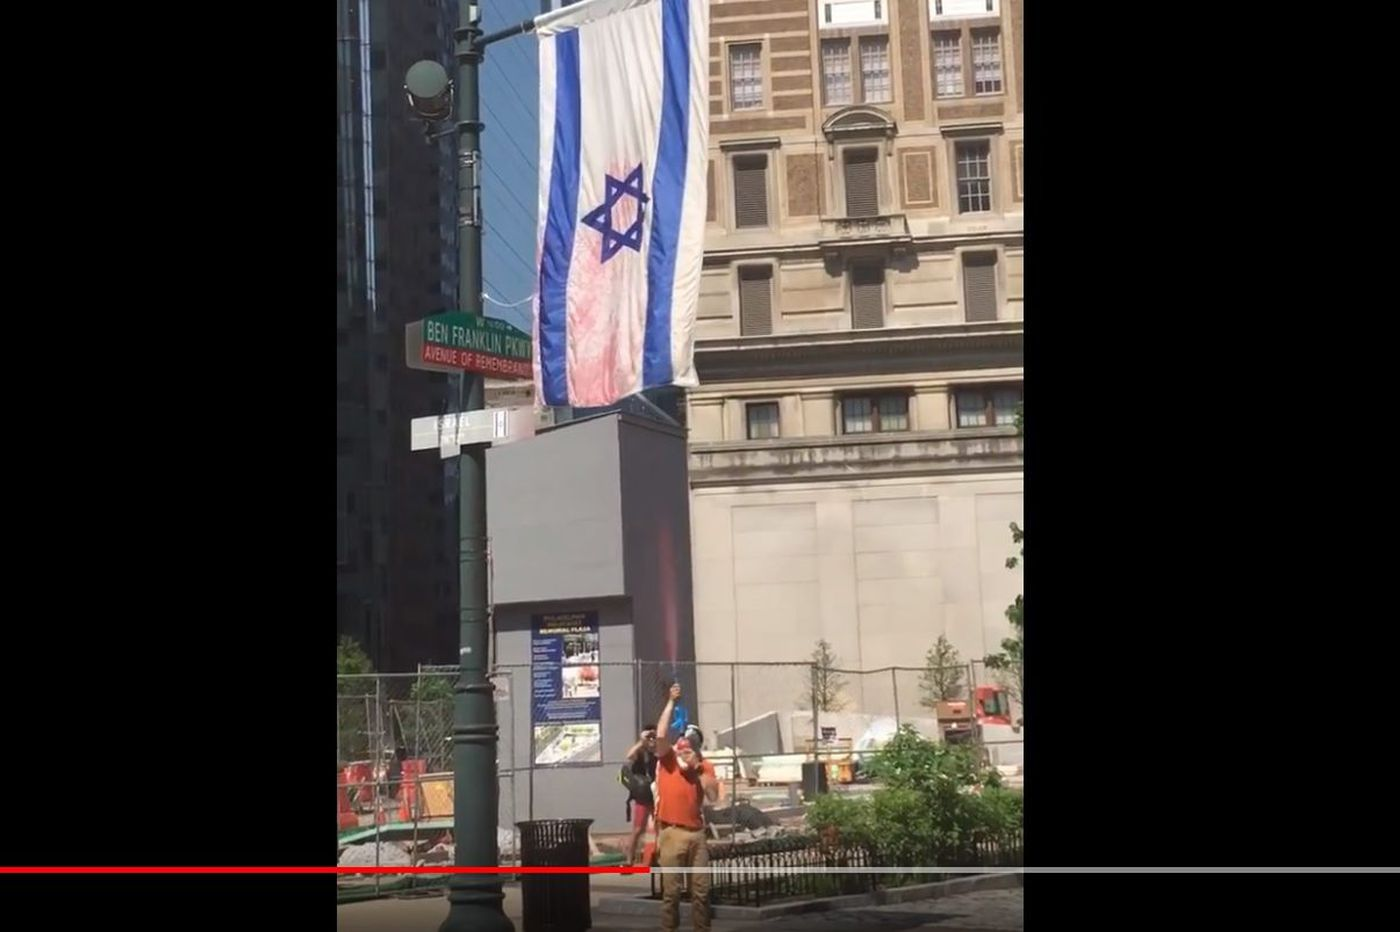 Philly DA: Video shows a second suspect defacing Israeli flag